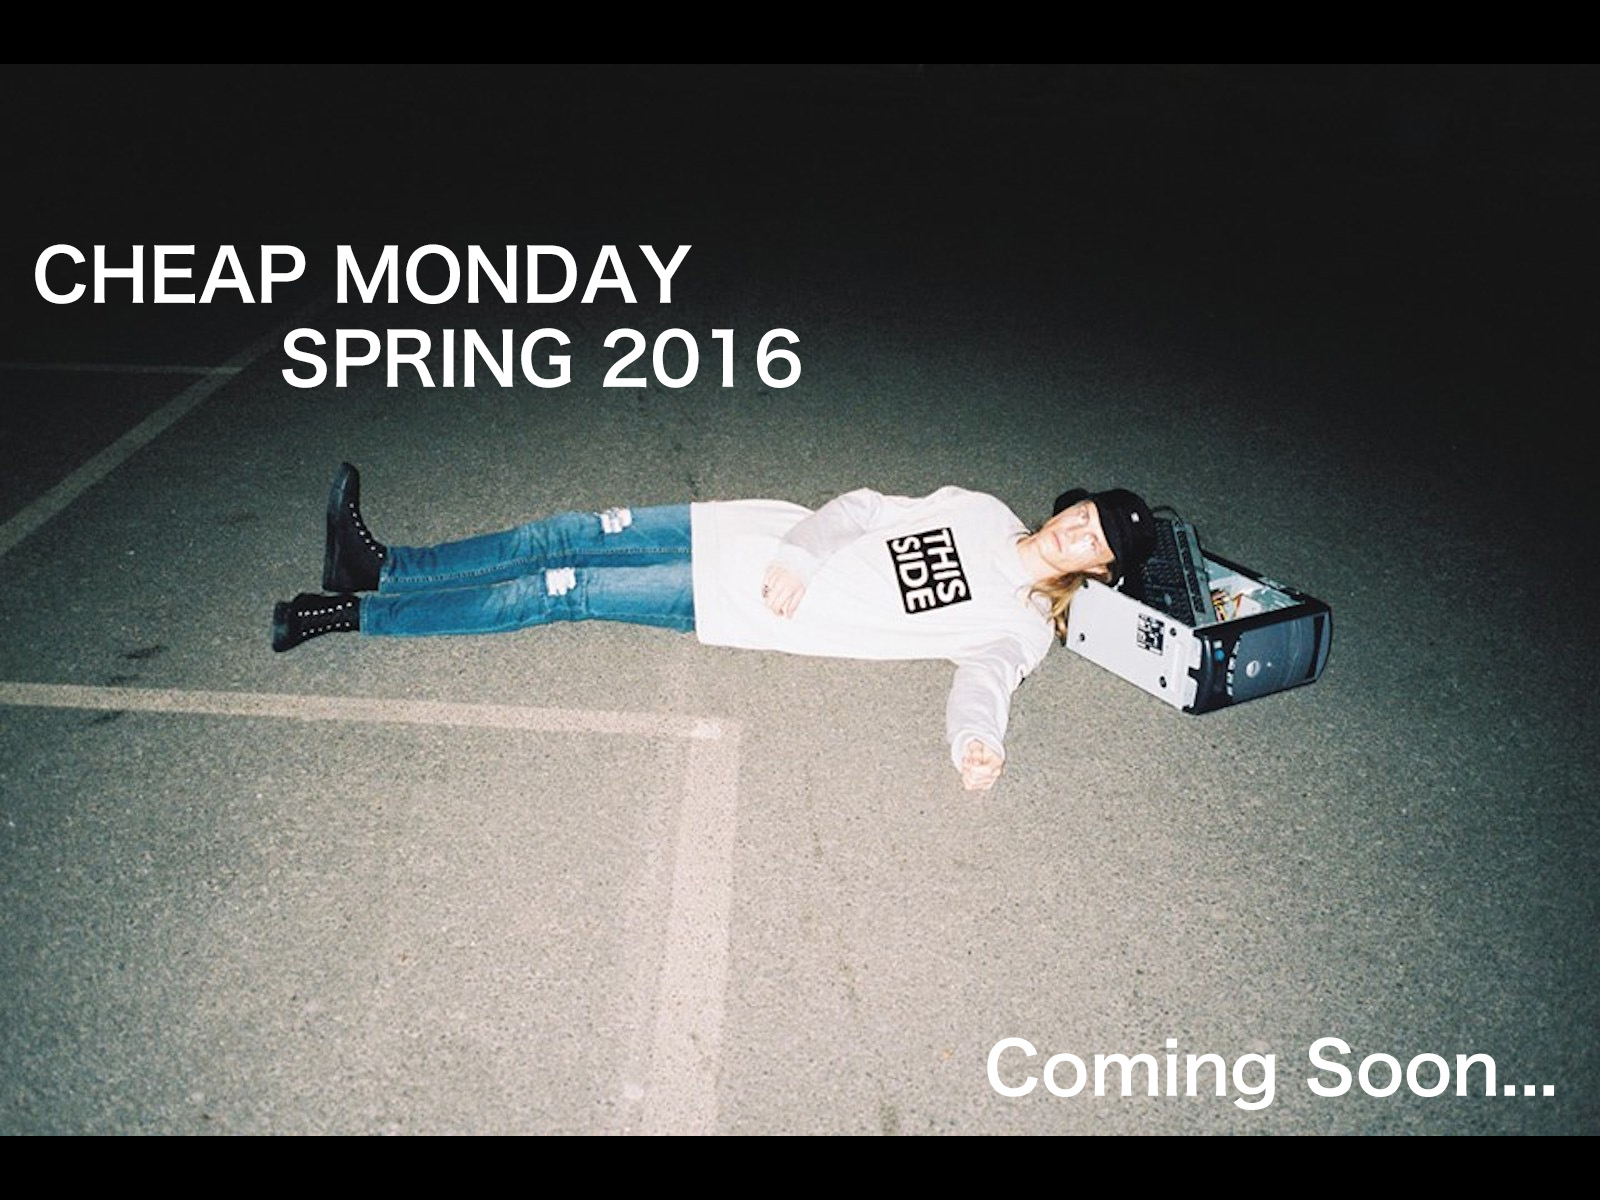 CHEAP MONDAY SPRING 2016 coming soon…